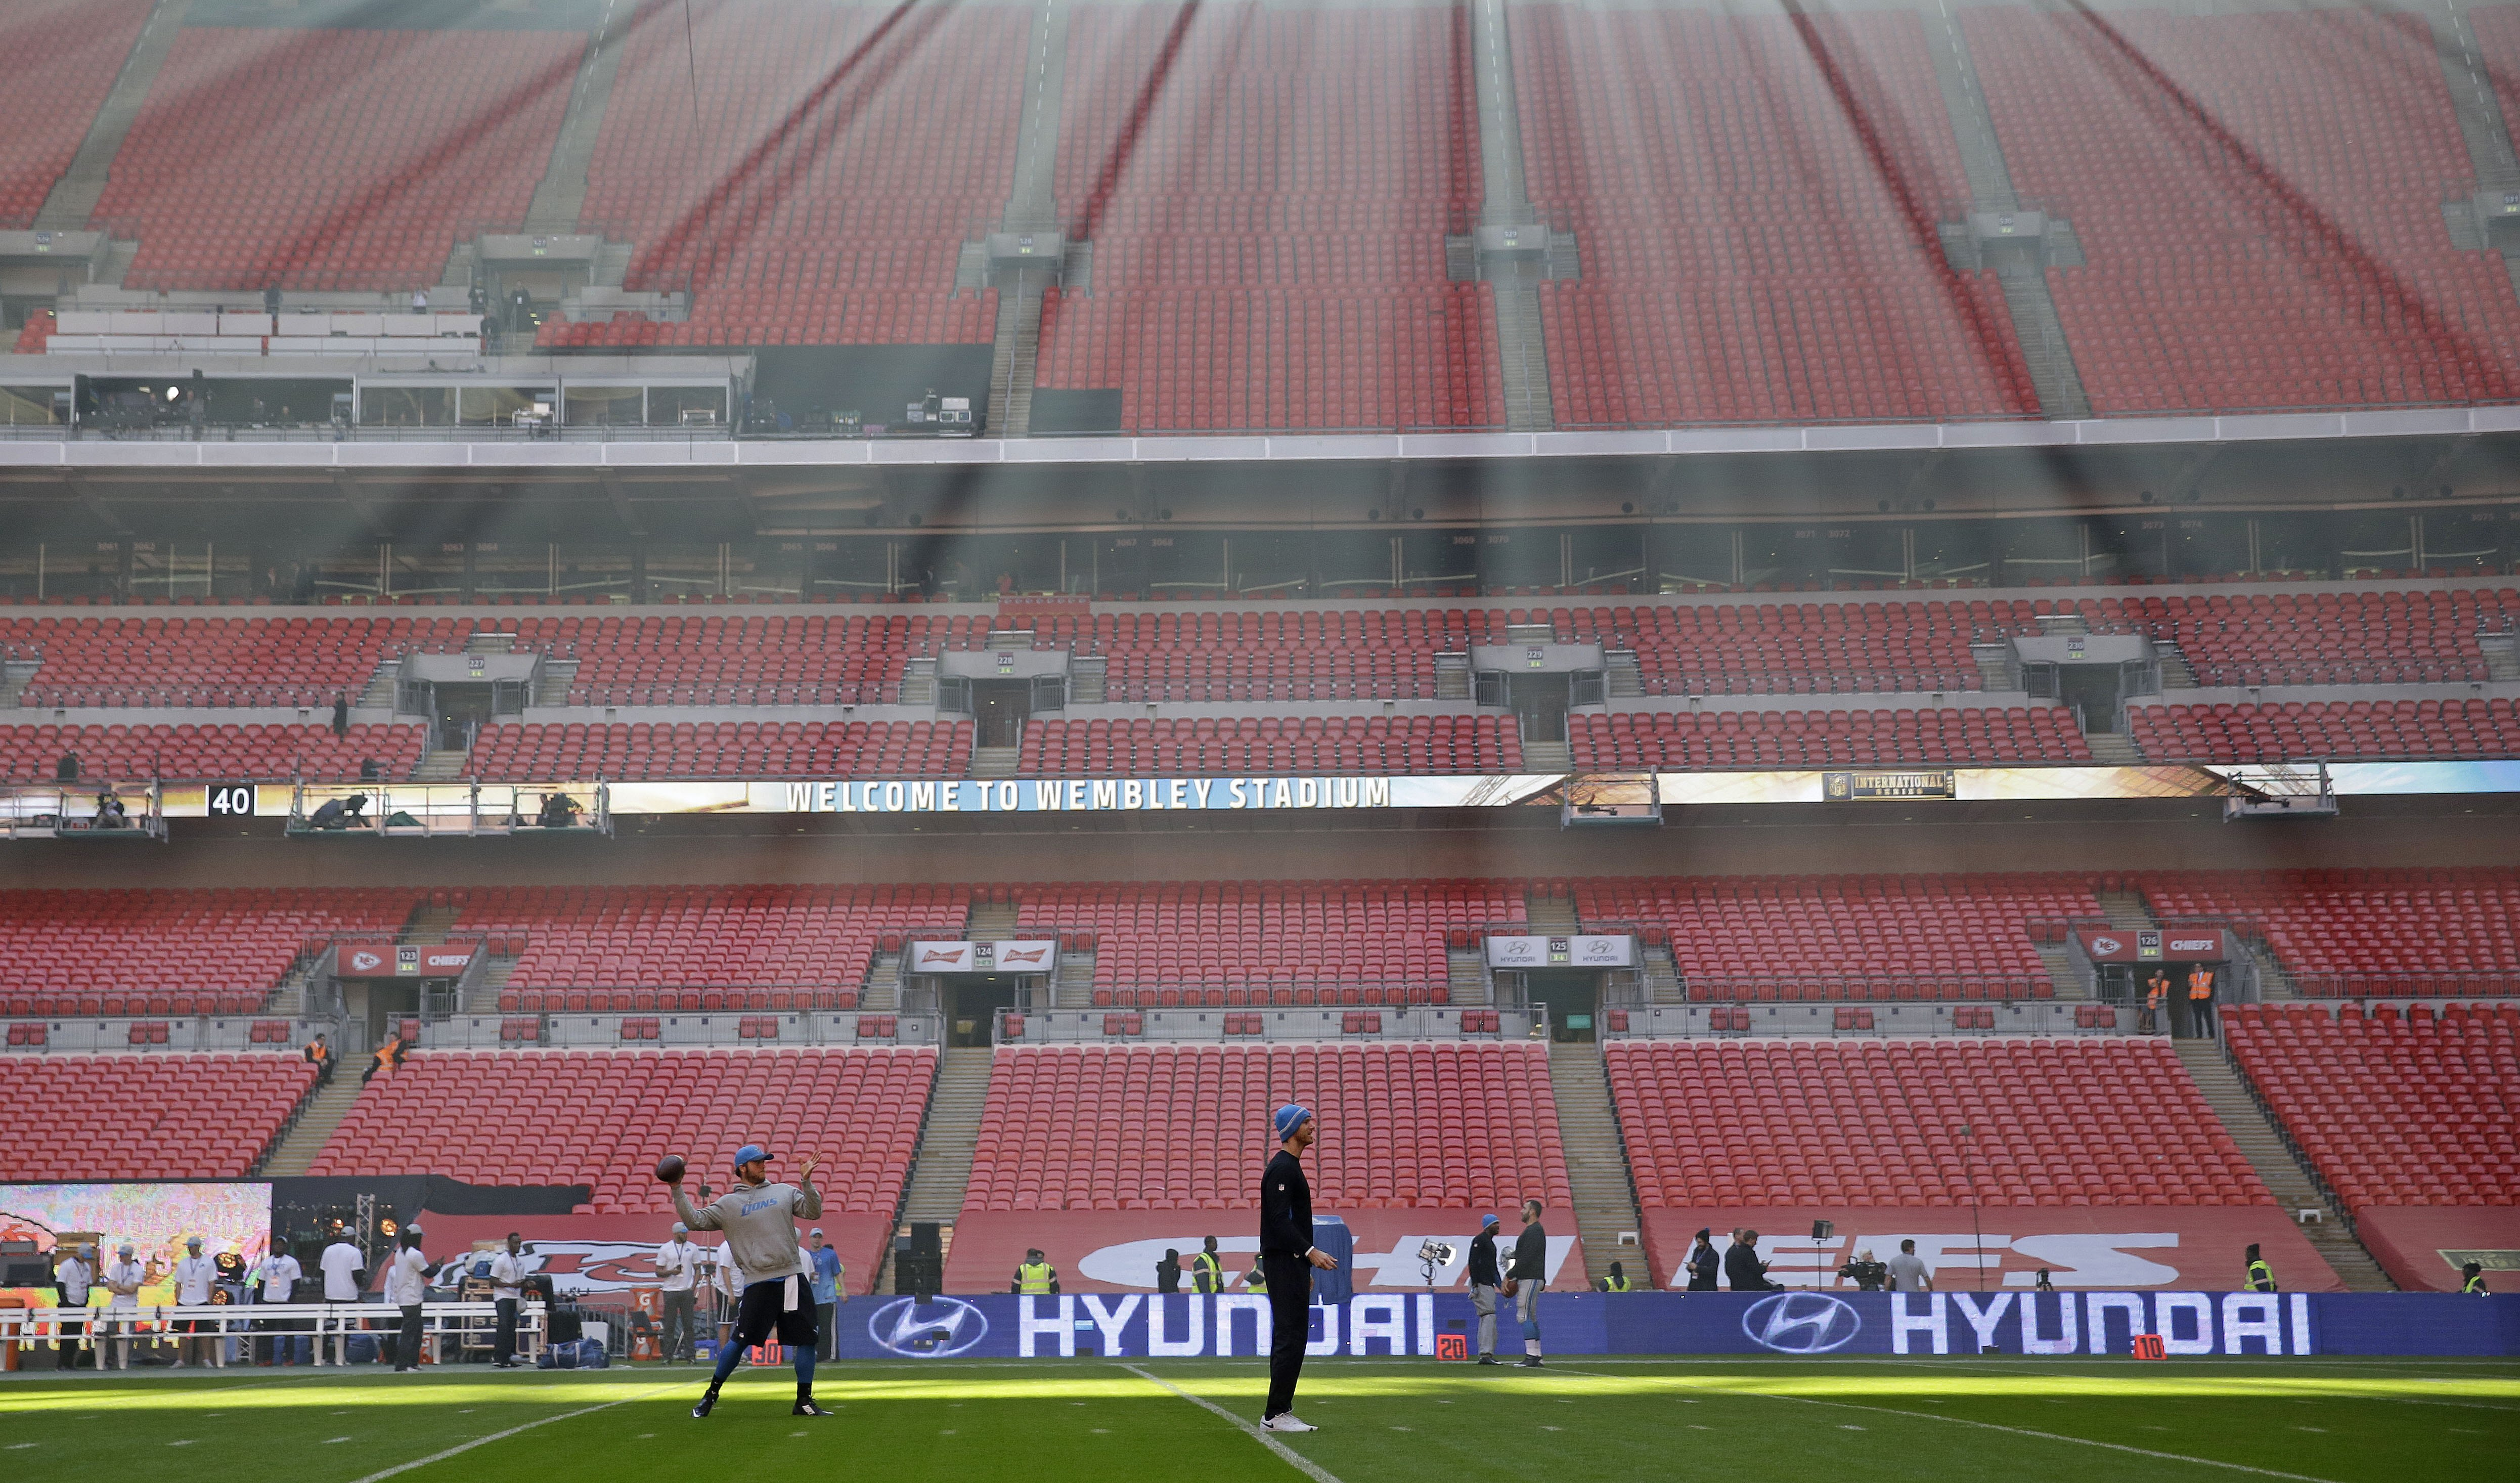 Sunlight filters through as Detroit Lions quarterback Matthew Stafford (9) passes the ball during the warm-up before the NFL football game between Detroit Lions and Kansas City Chiefs Wembley Stadium in London,  Sunday, Nov. 1, 2015. (AP Photo/Matt Dunham